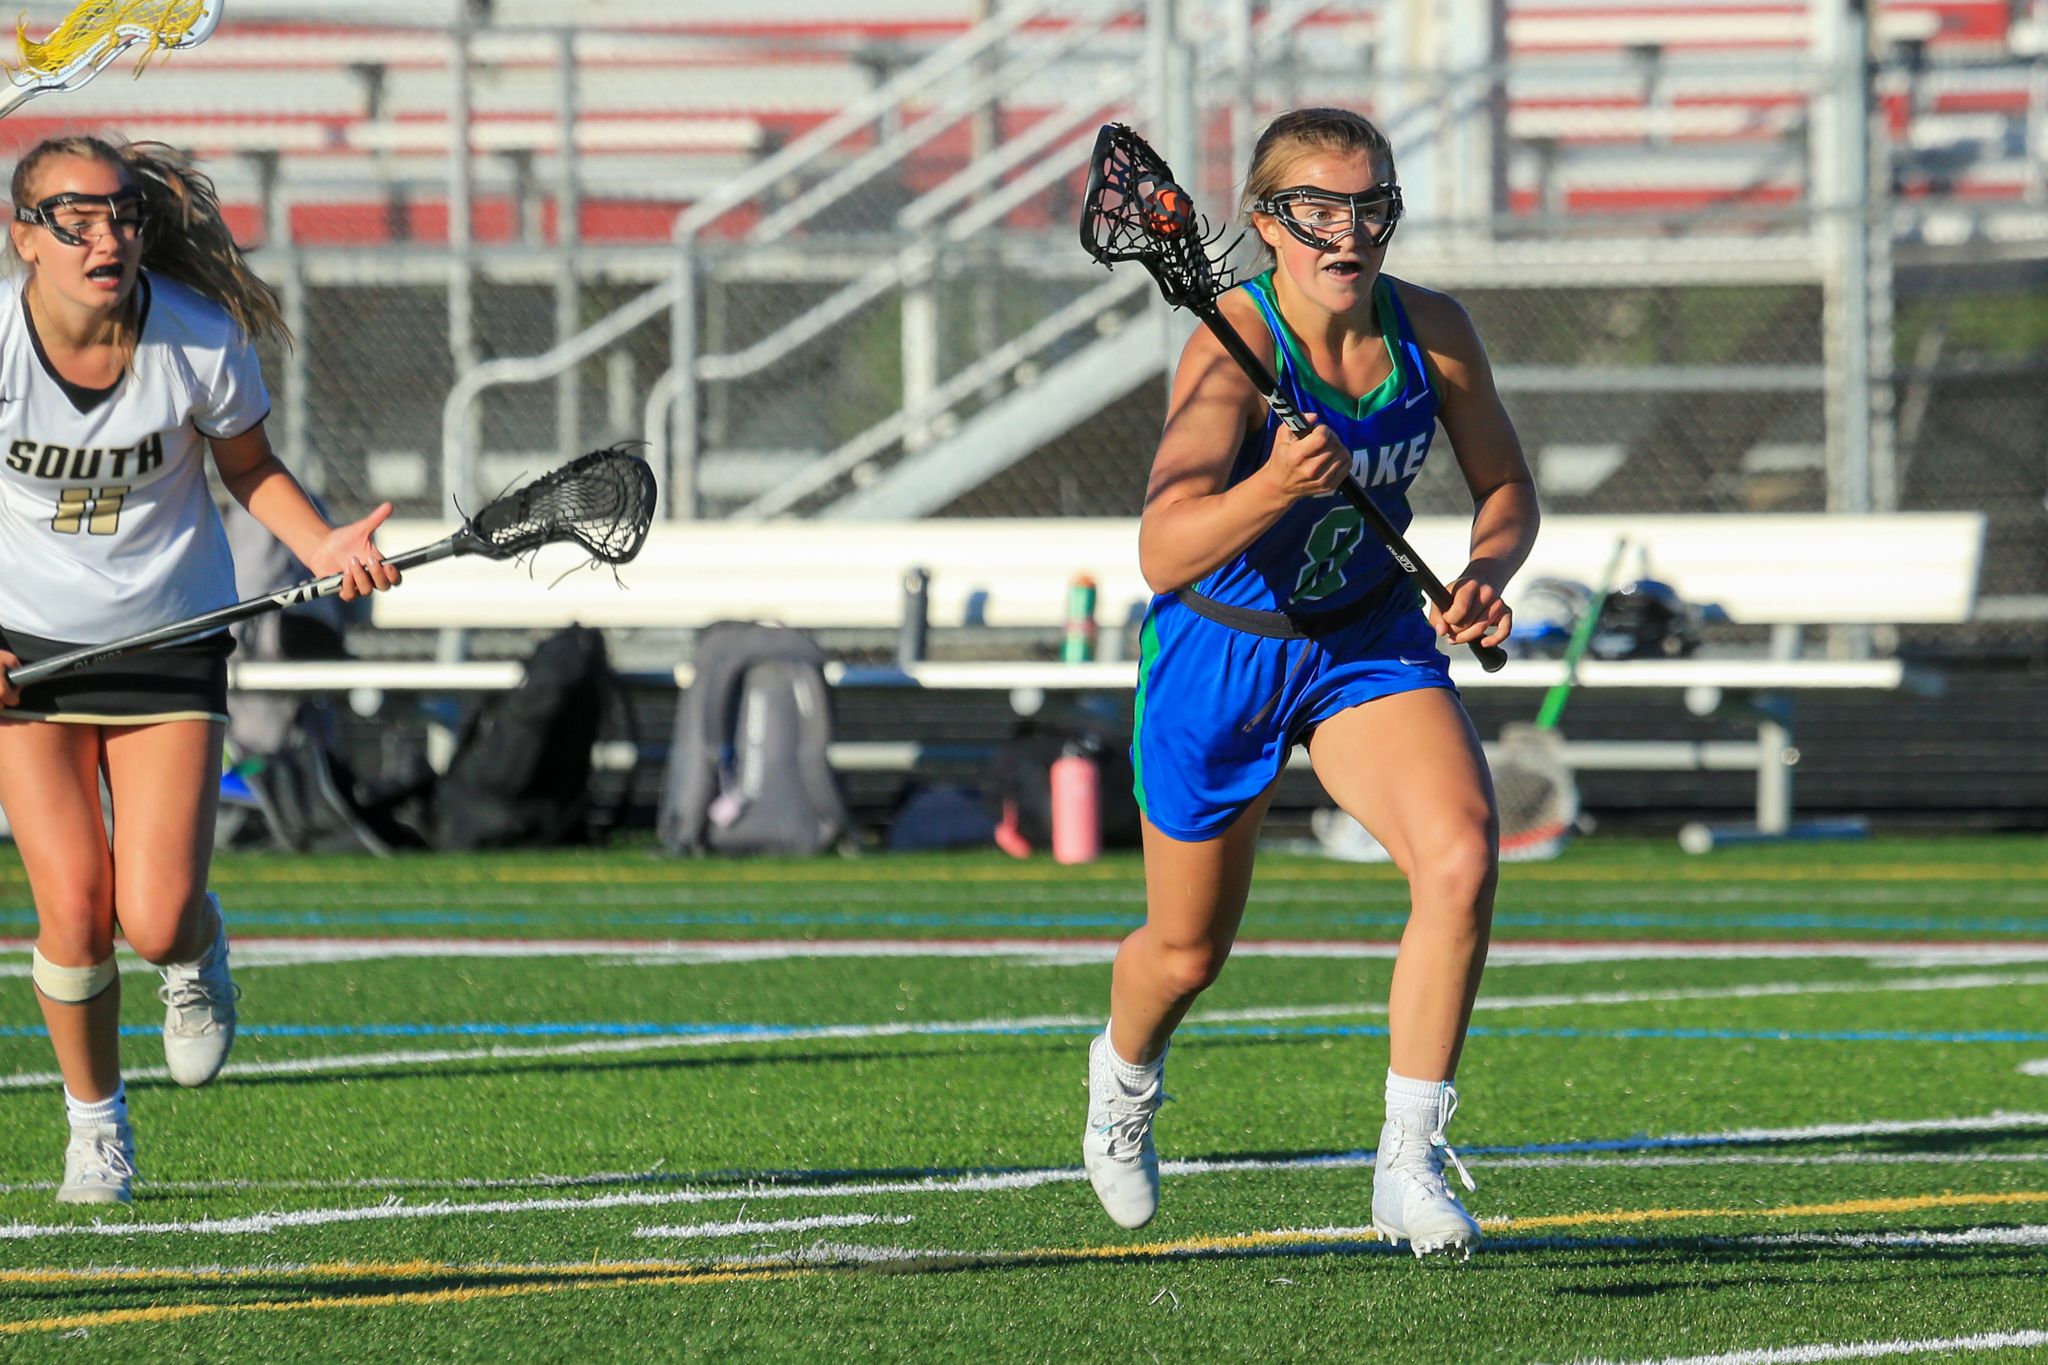 Blake's Ellie Morrison (8) had a team-high five goals in the Bears' 15-13 loss to Lakeville South on Friday to conclude the regular season for both teams. Photo by Jeff Lawler, SportsEngine